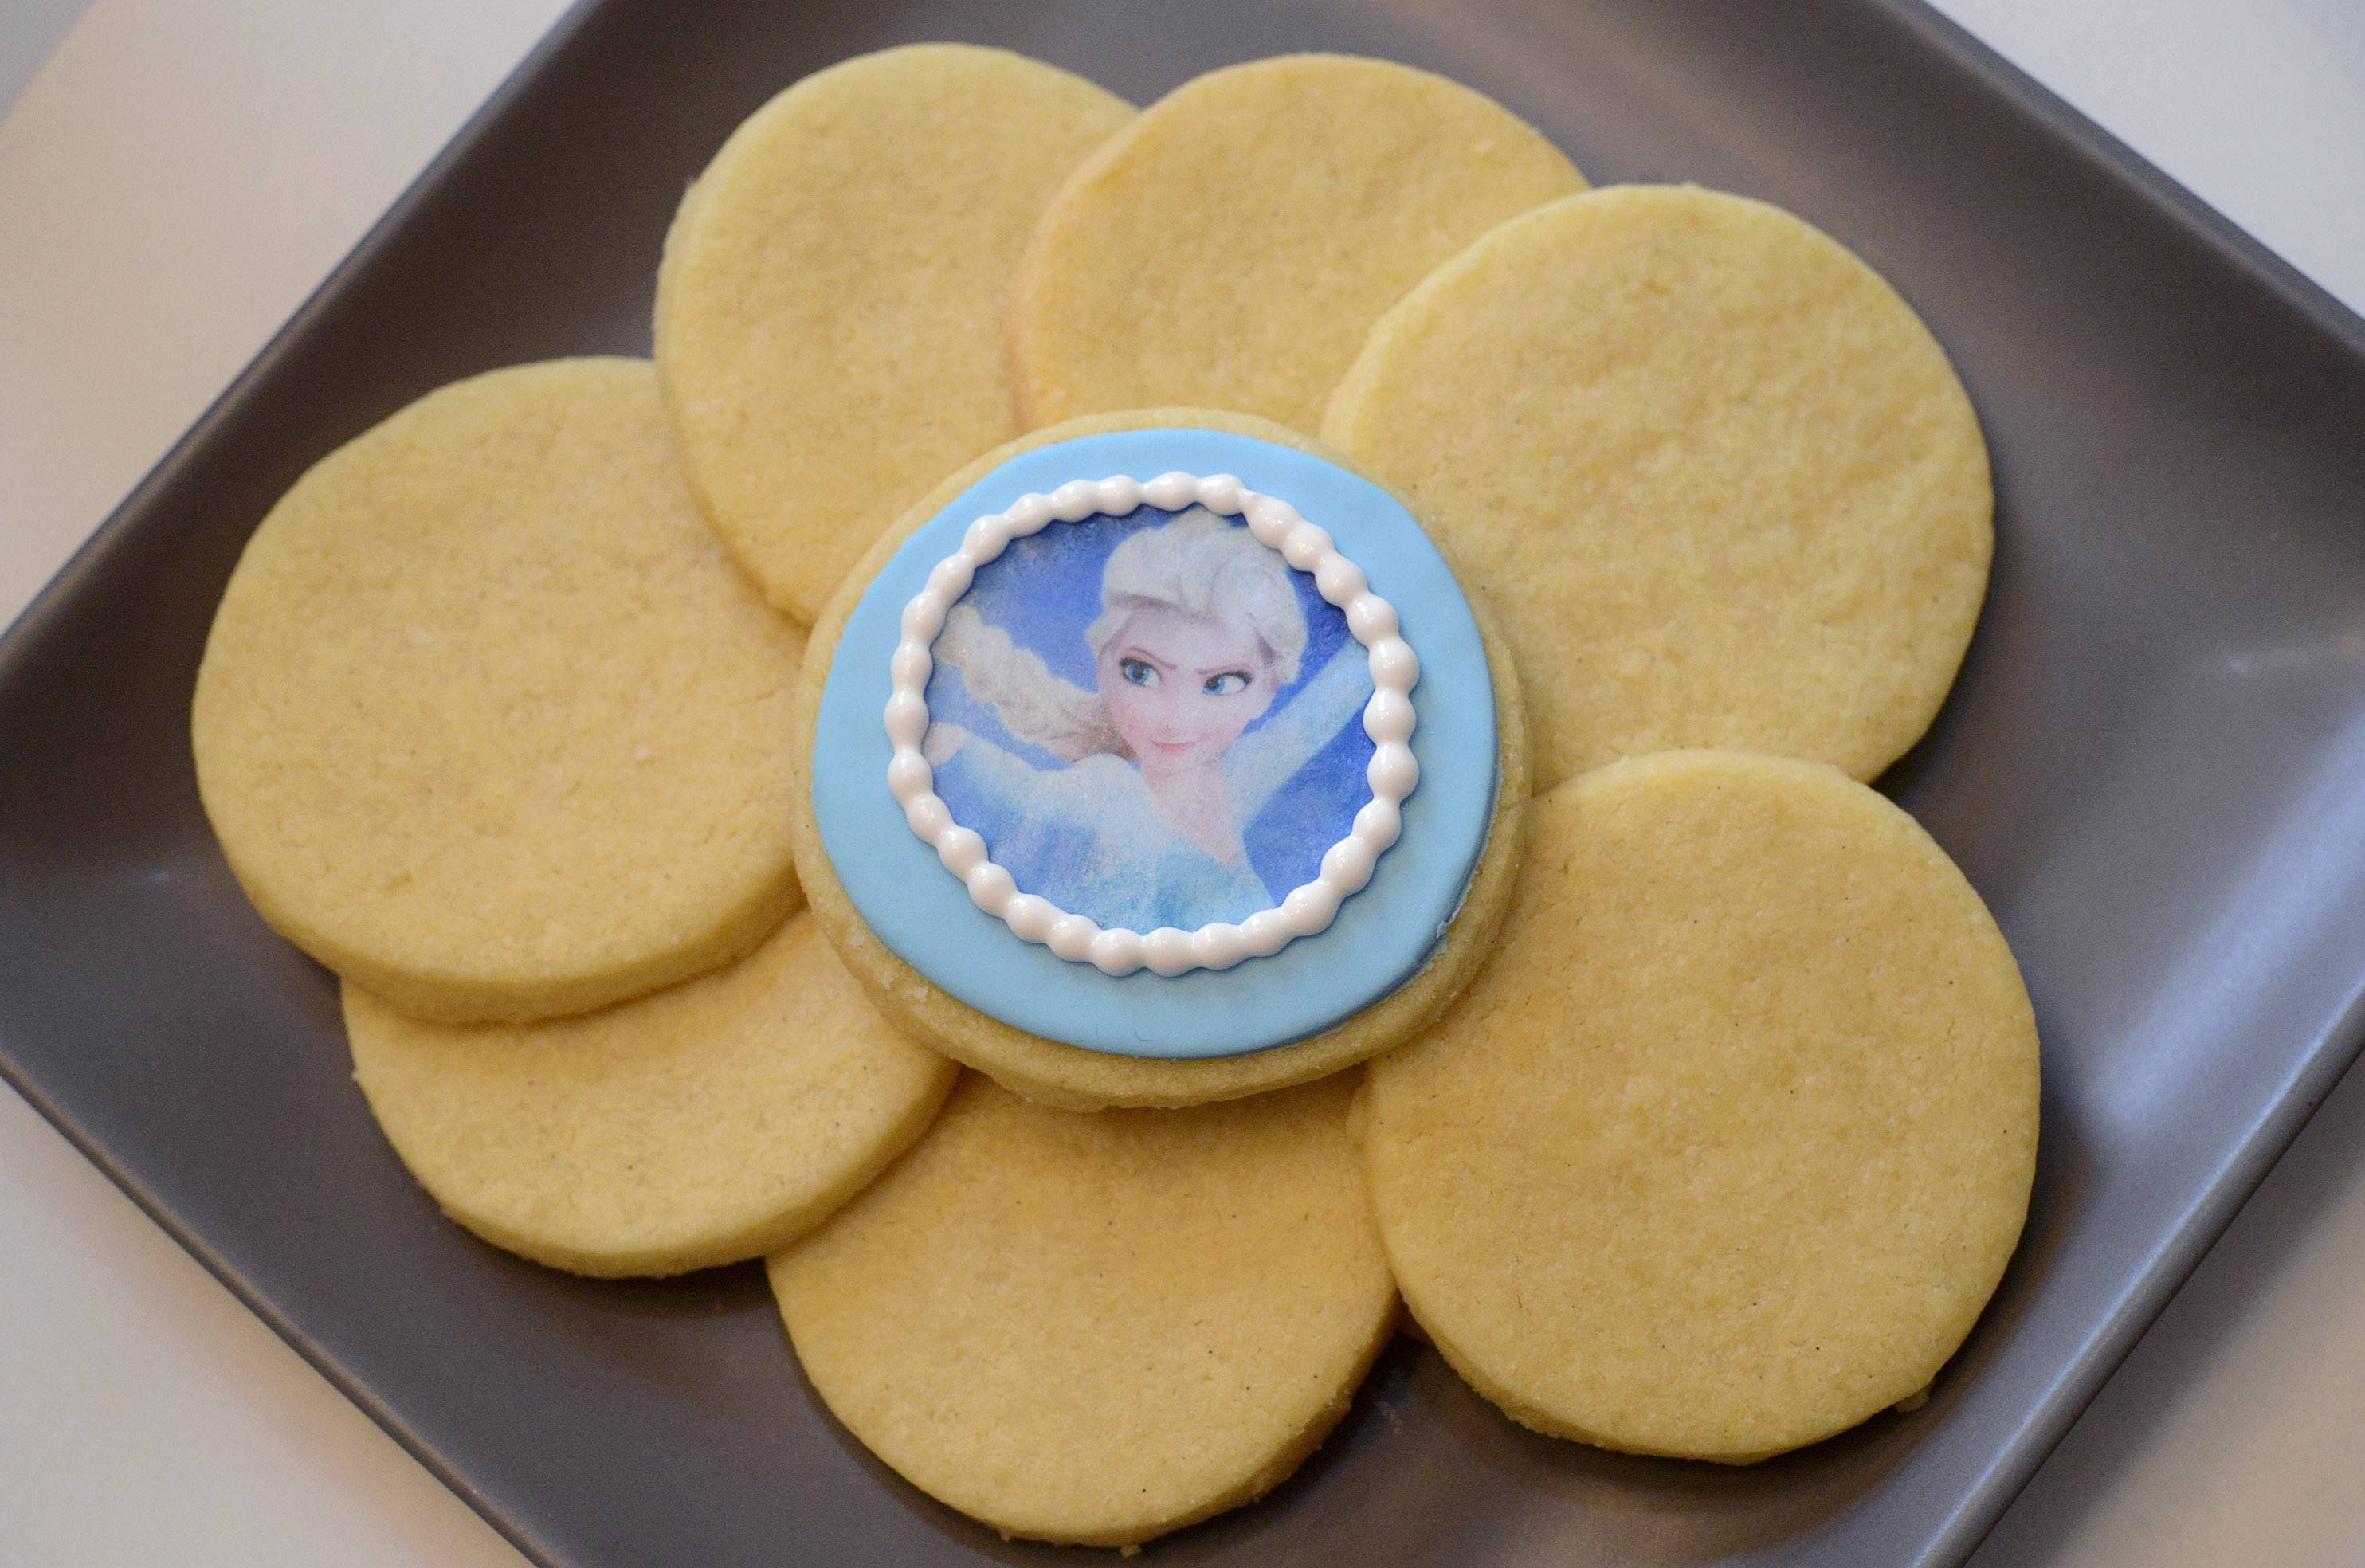 Christina Hernandez of Elgin sells decorated butter cookies through her FanCThatEvents cookie shop on Etsy.com.